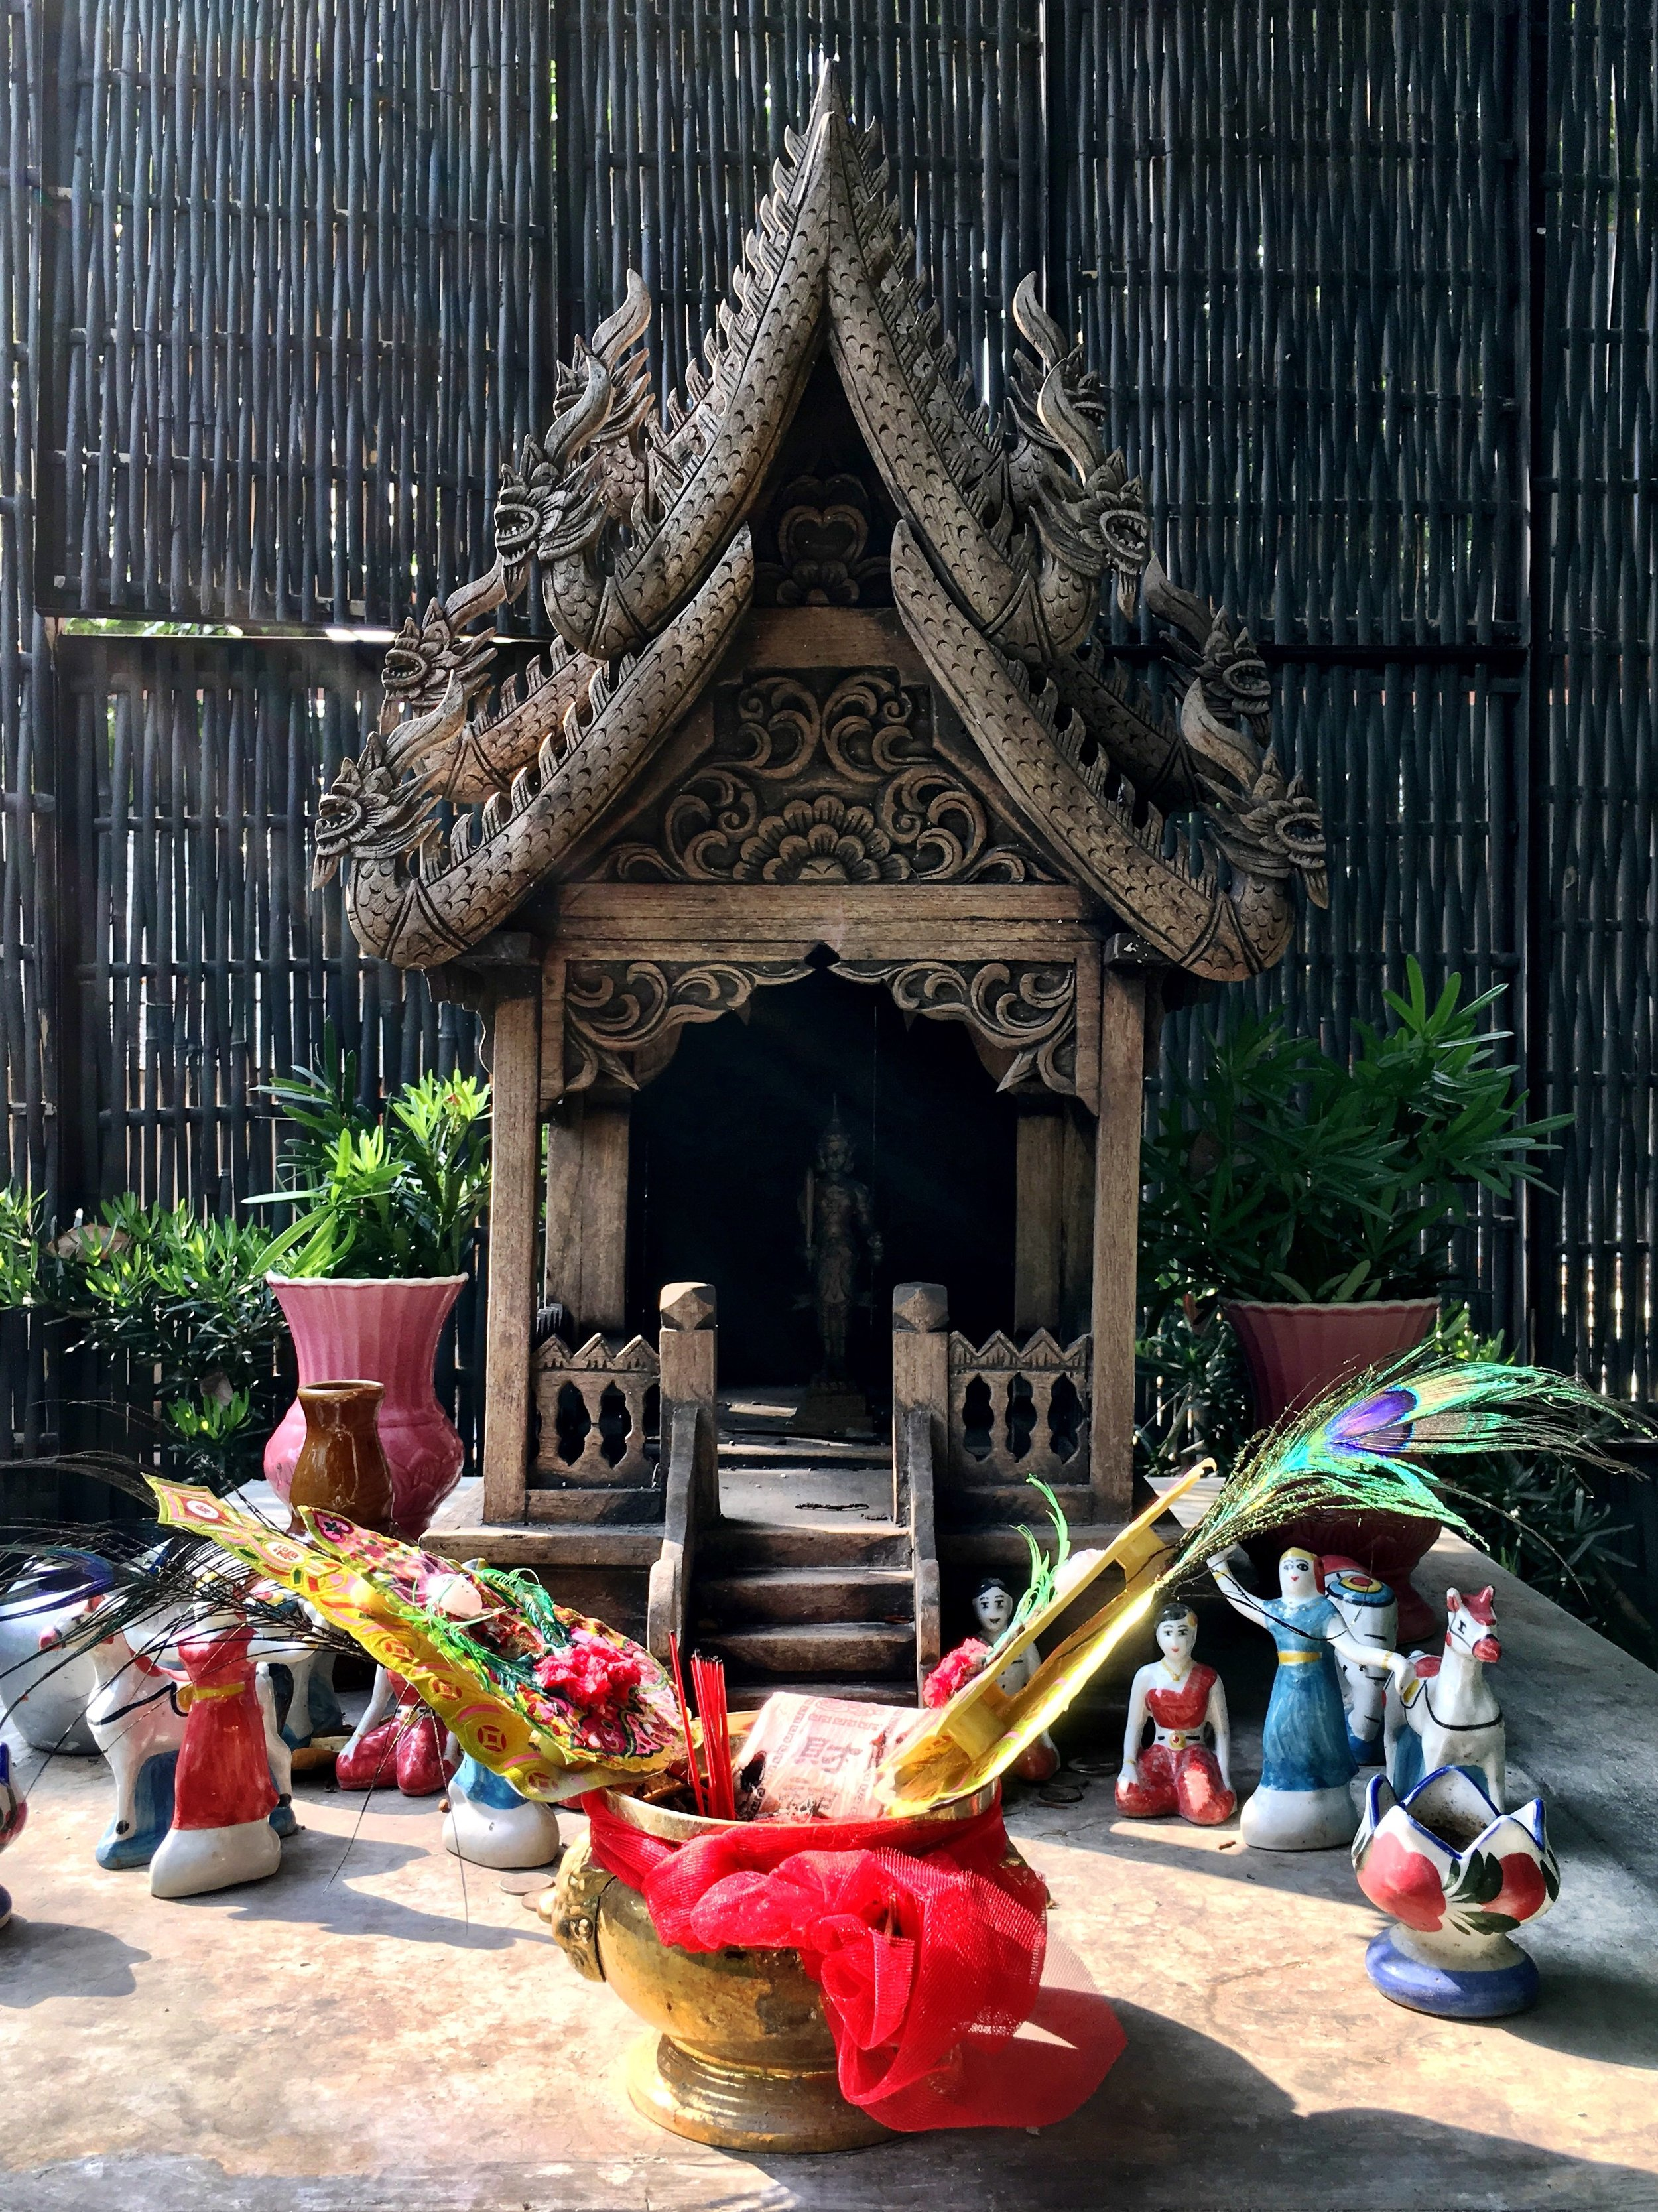 Wally and Duke gave offerings of fruit and said prayers at the spirit house on the grounds of their hotel